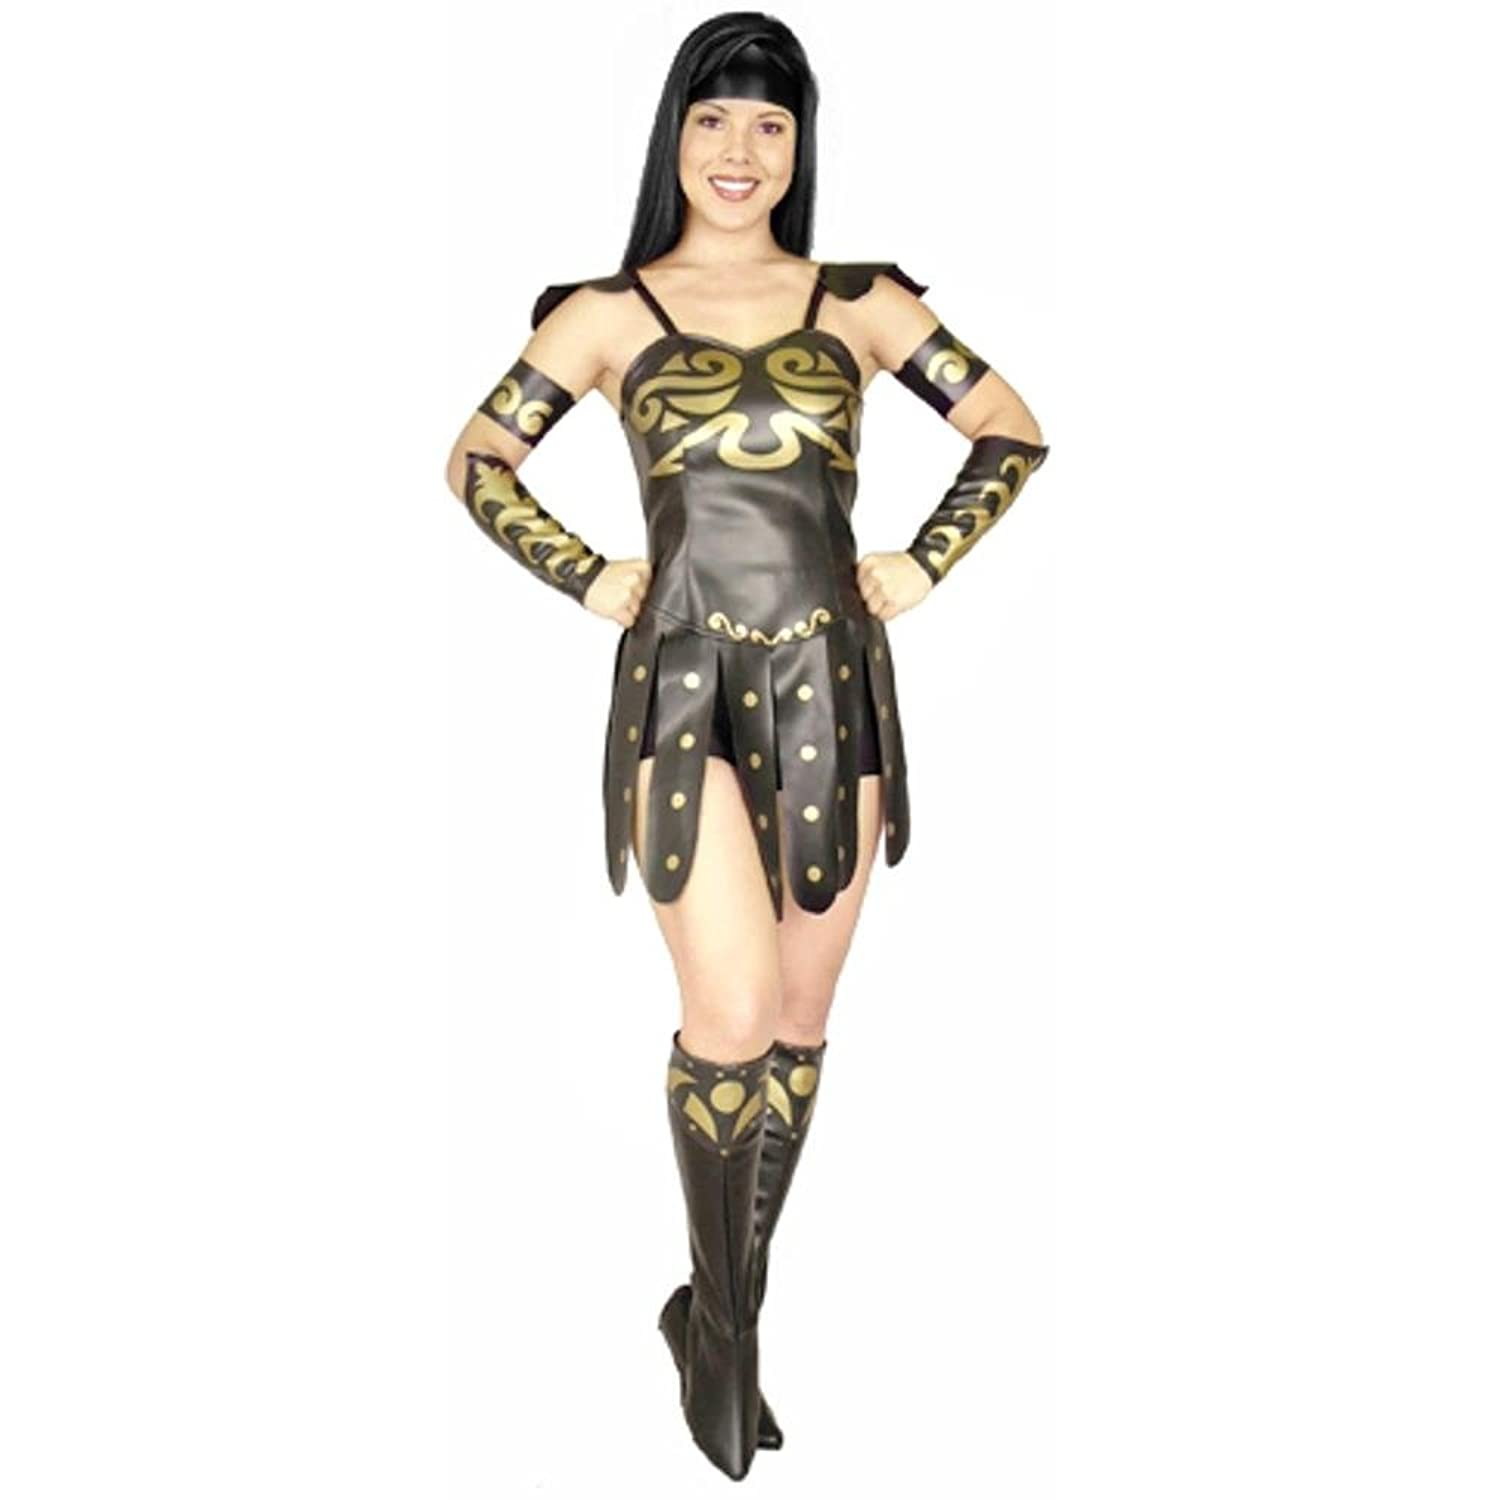 Xena Warrior Princess Costume The gallery for -->...